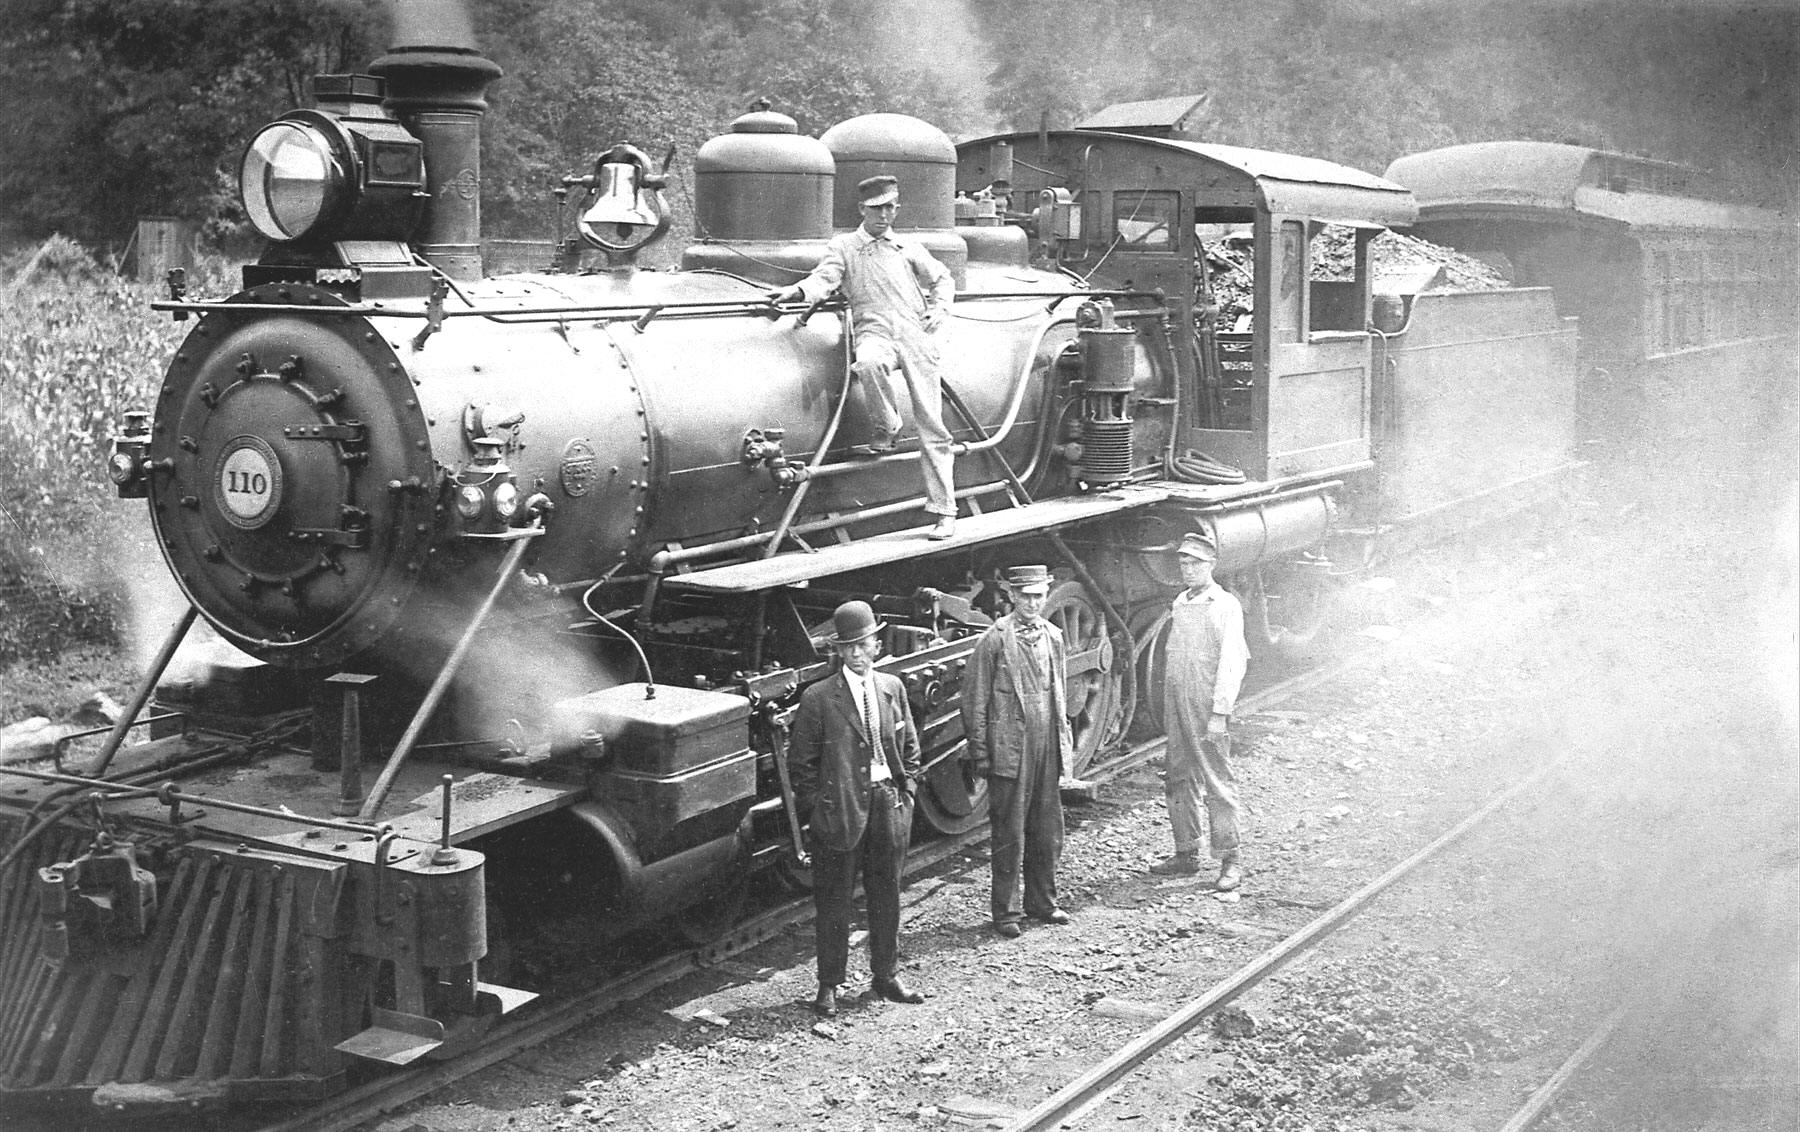 Cumberland Model Engineering Simple Steam Engine Besides Diagram On Additionally Many Other Friends And Acquaintances Over The Years Have Been Making Trek To Southern Michigan Photograph 110